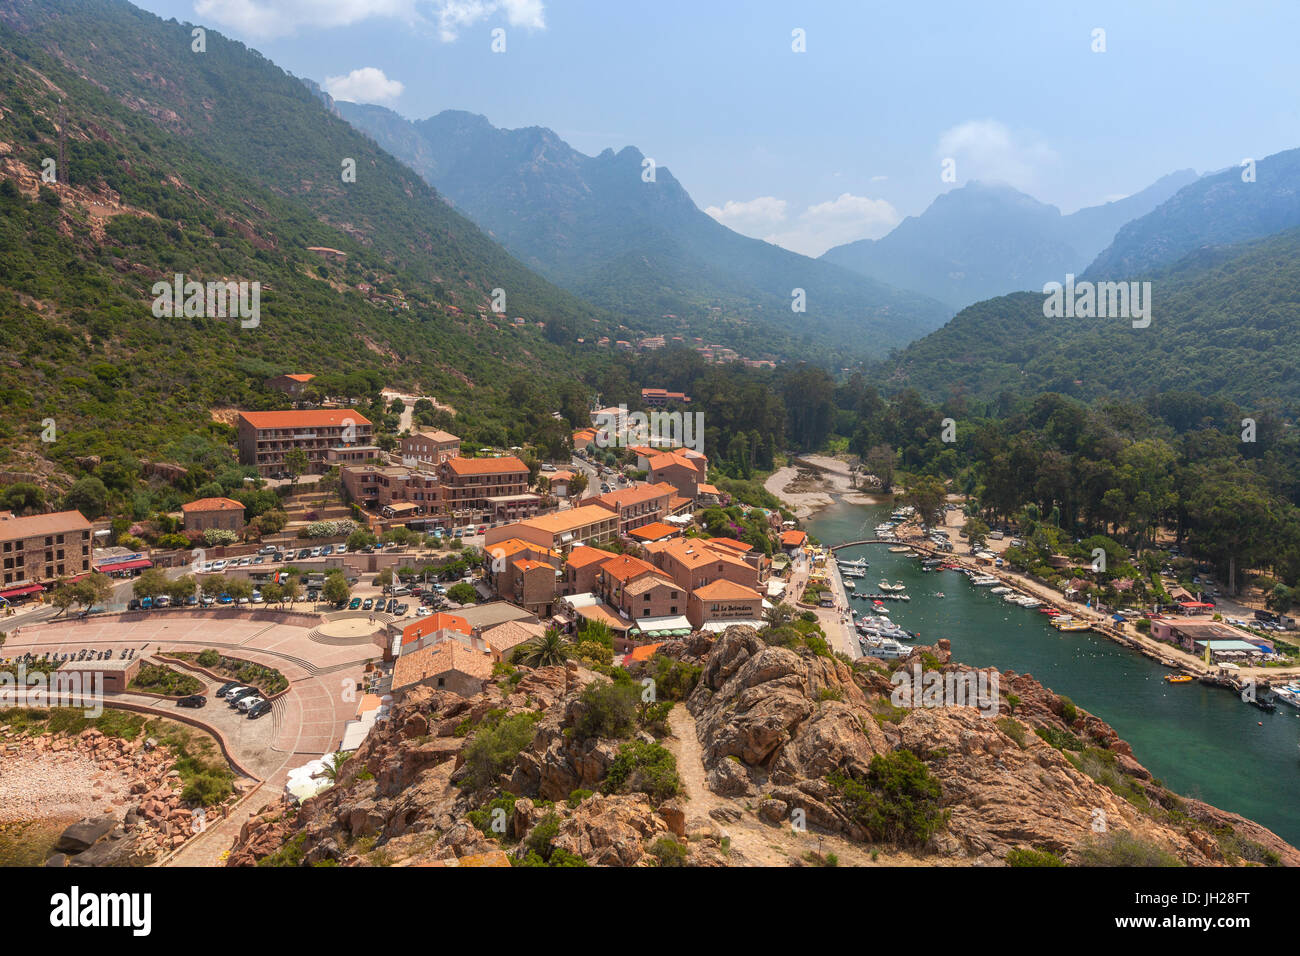 The typical village and harbor of Porto immersed in the green vegetation of the promontory, Southern Corsica, France - Stock Image